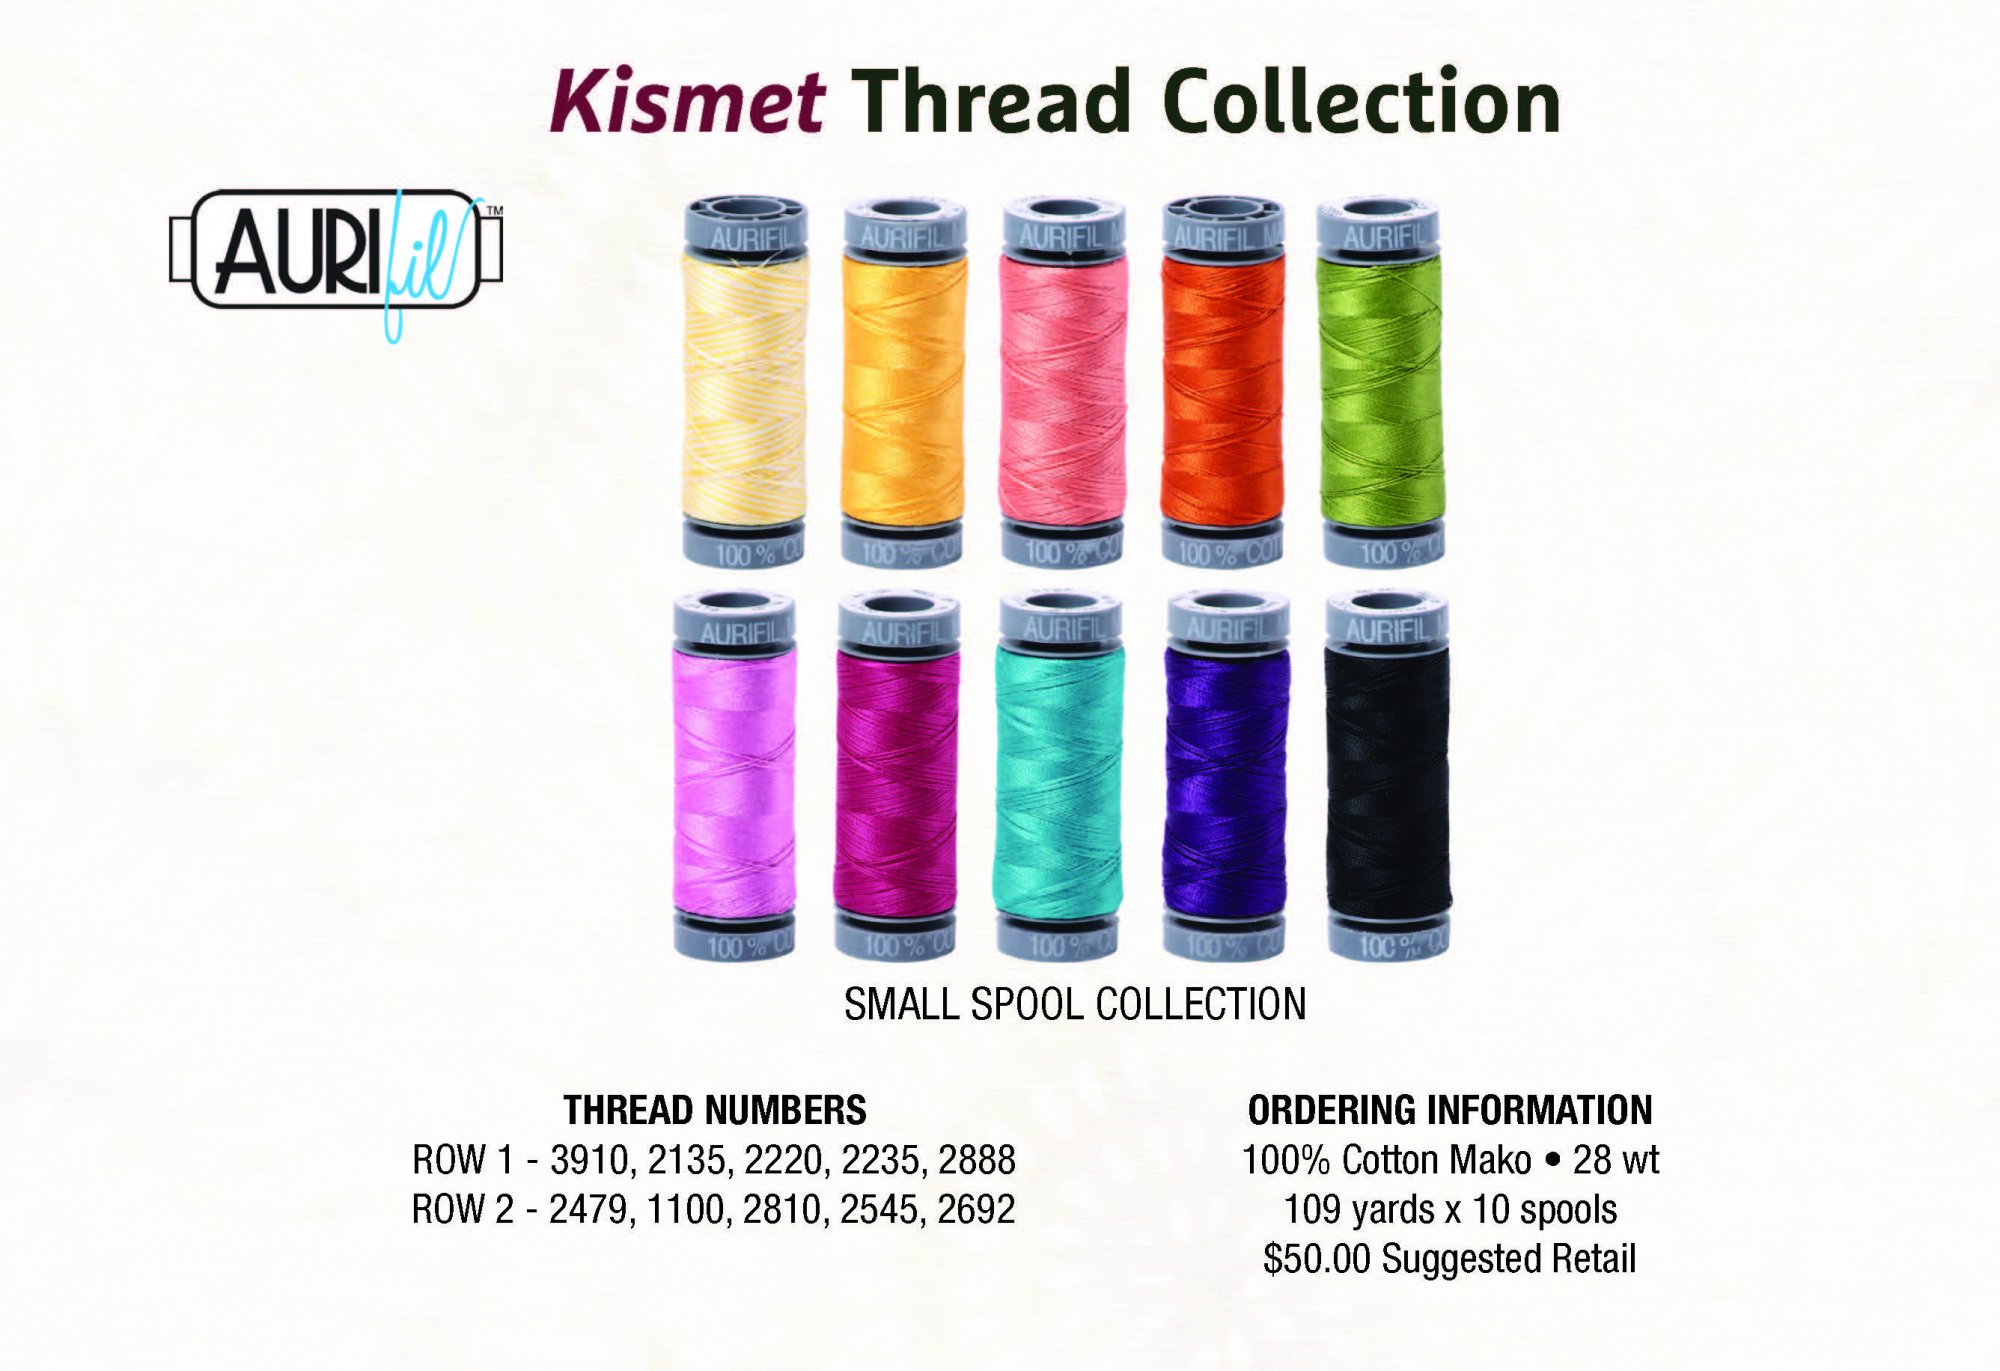 Kismet Aurifil 28wt Thread Collection